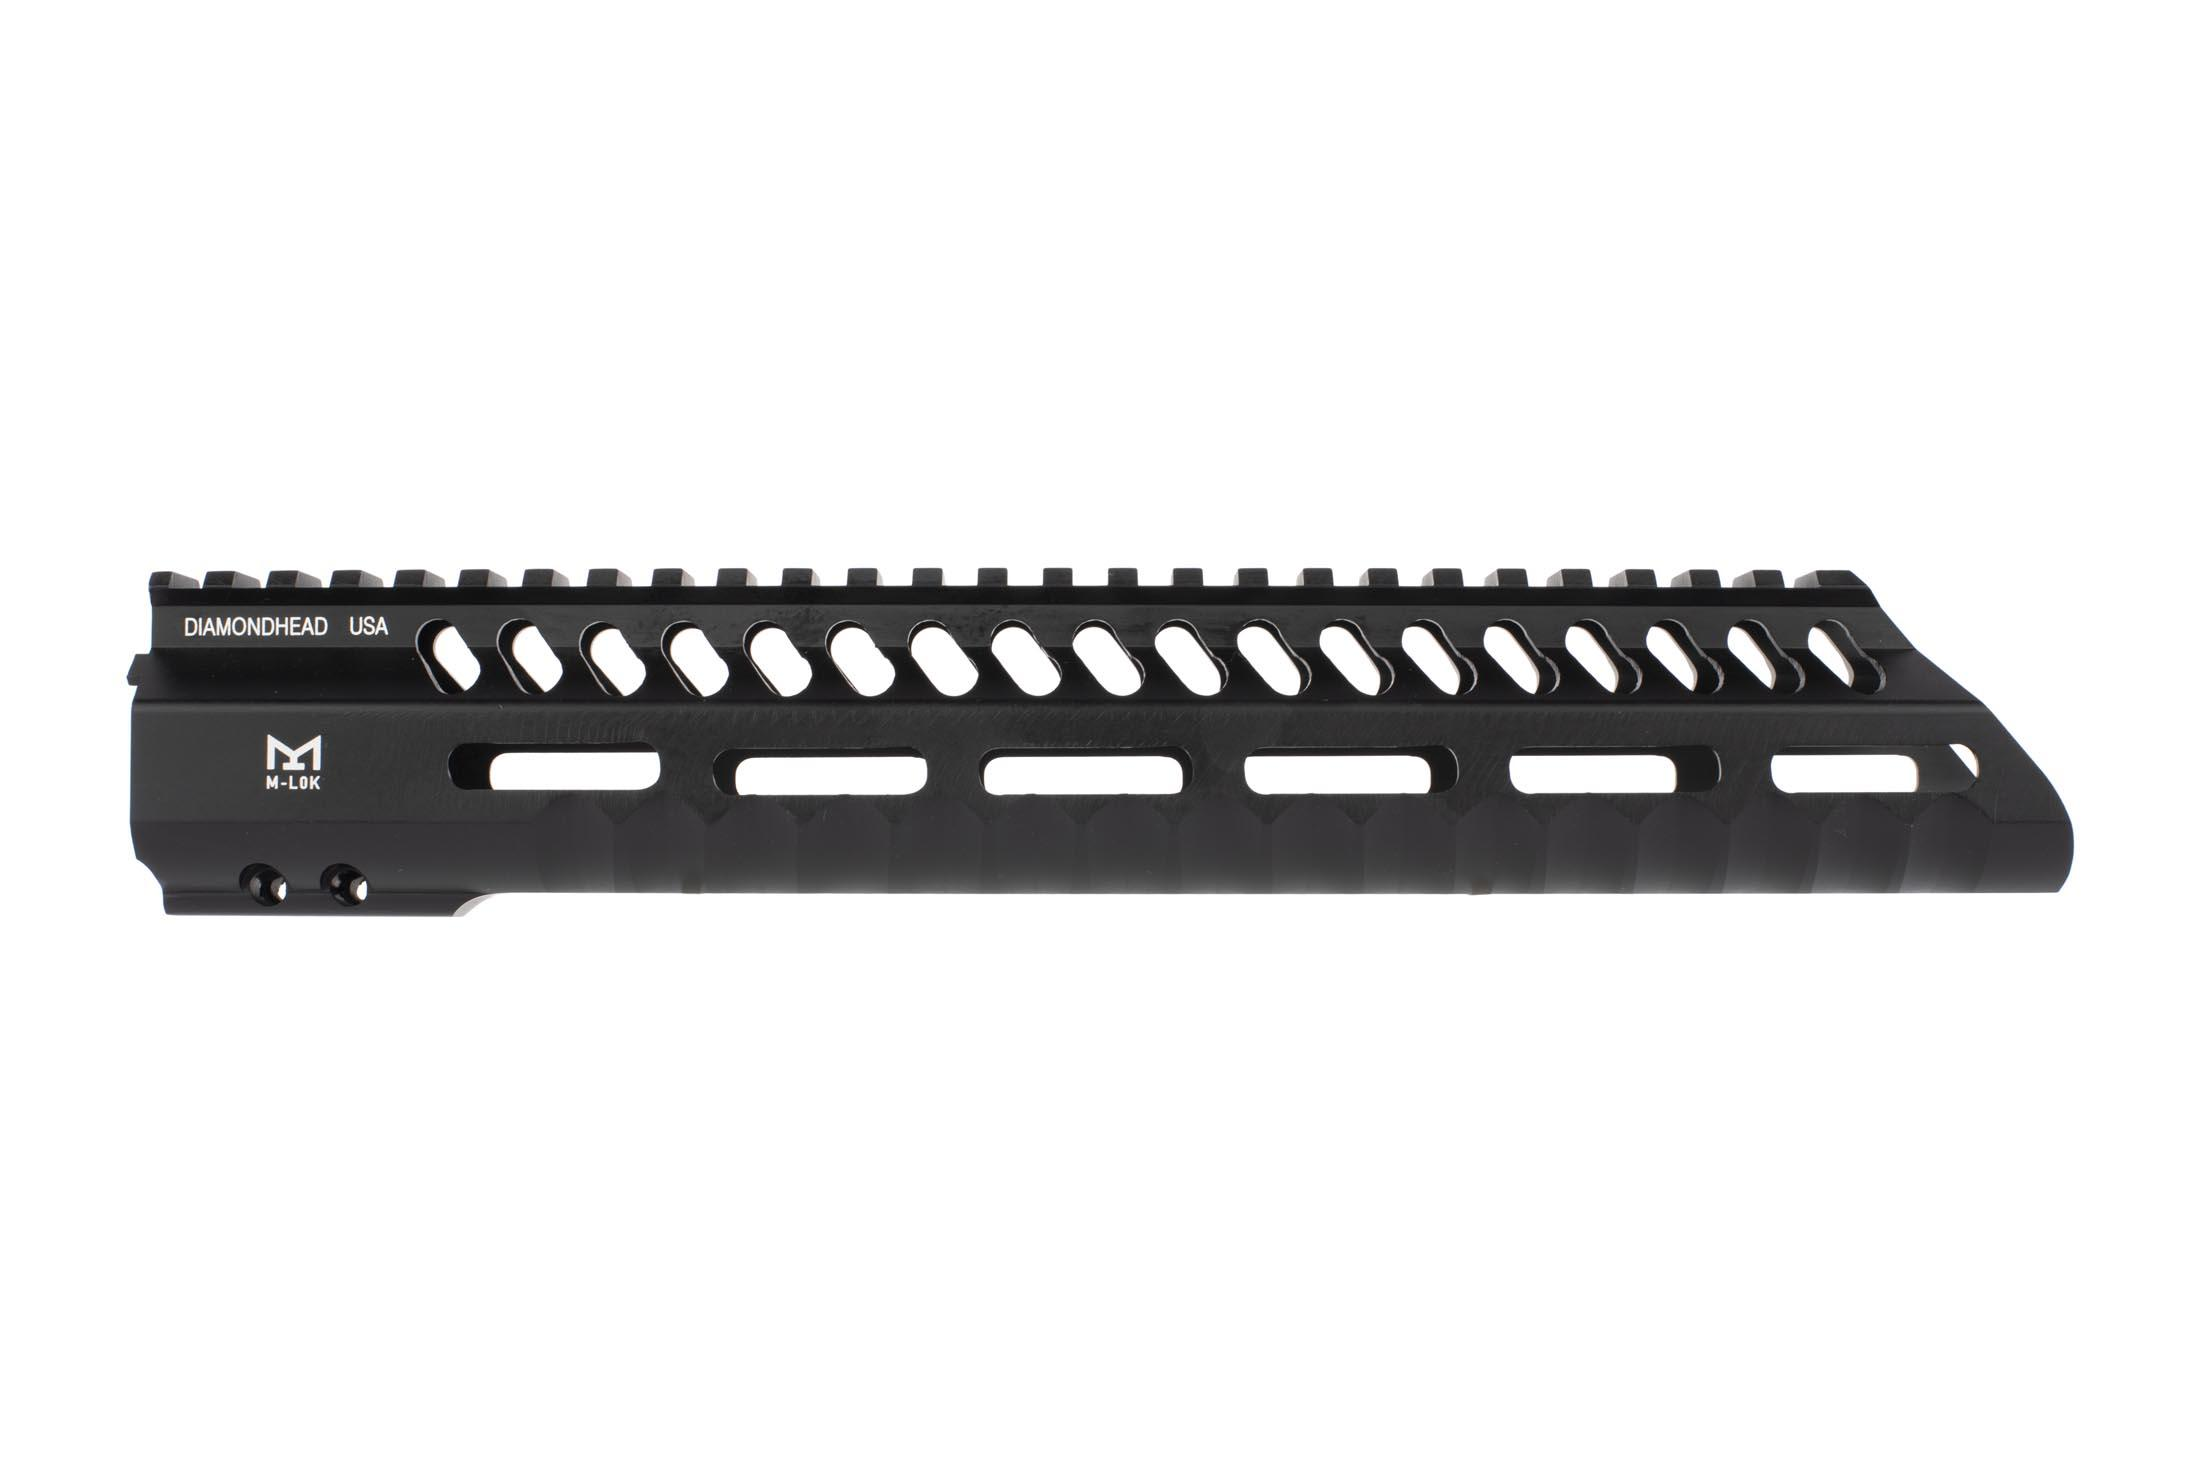 Diamondhead 10.25in 3rd generation VRS-T free float handguard features ergonomic finger grooves and M-LOK accessory slots